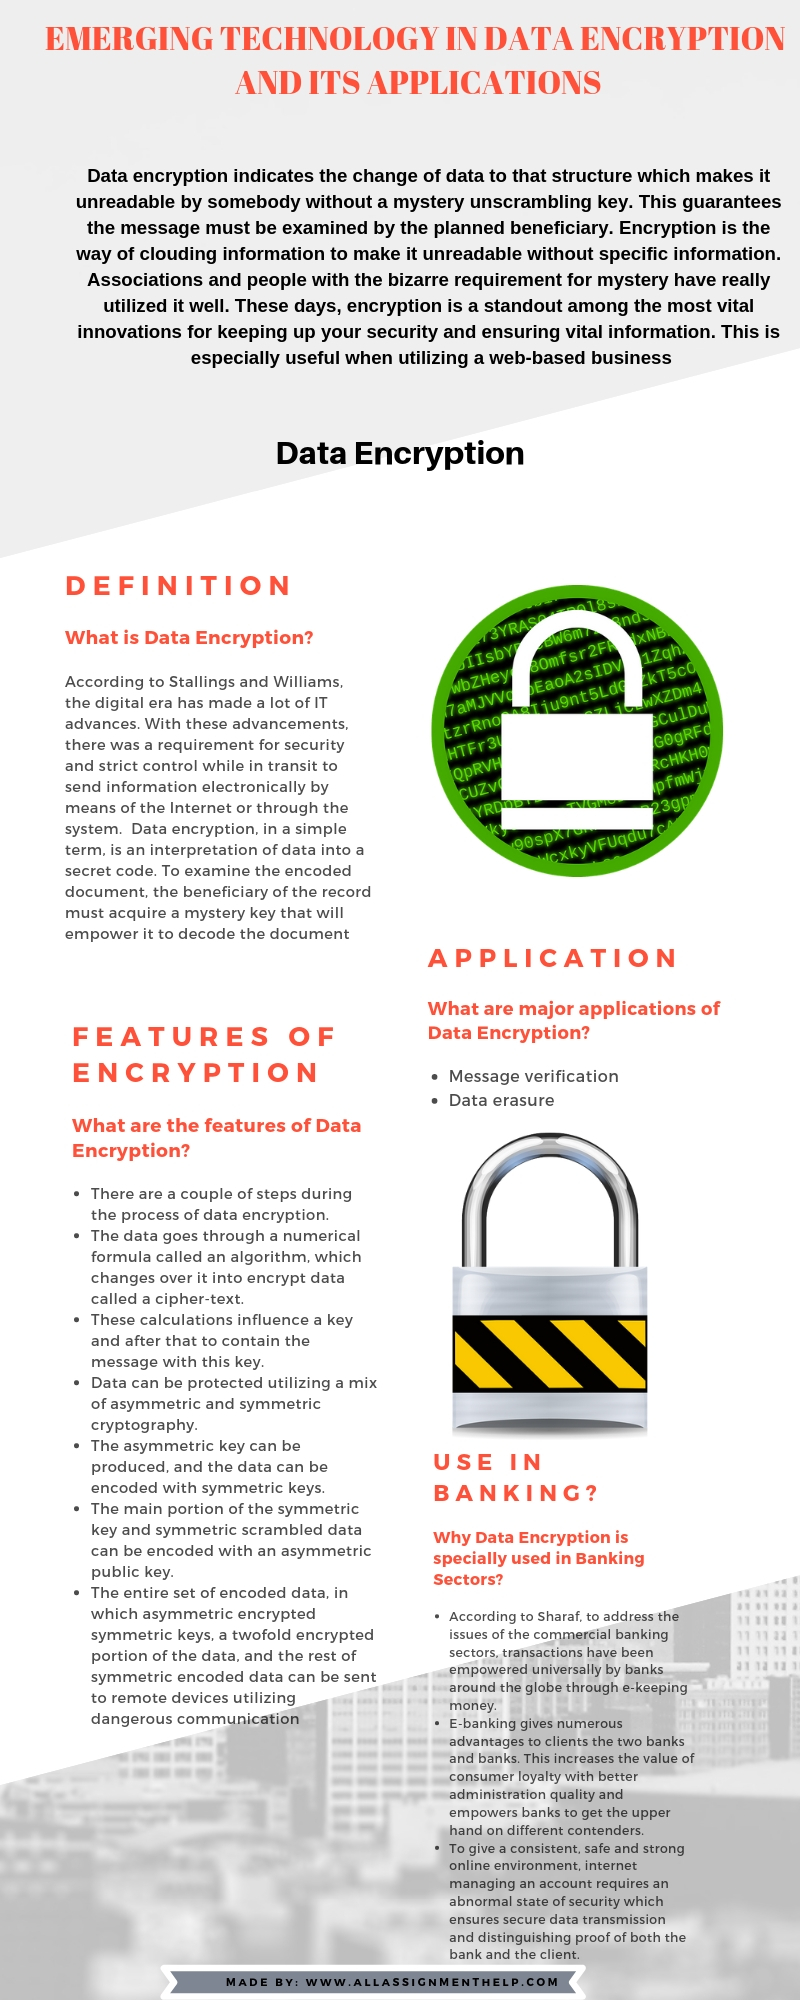 Emerging Technology in Data Encryption and its Applications